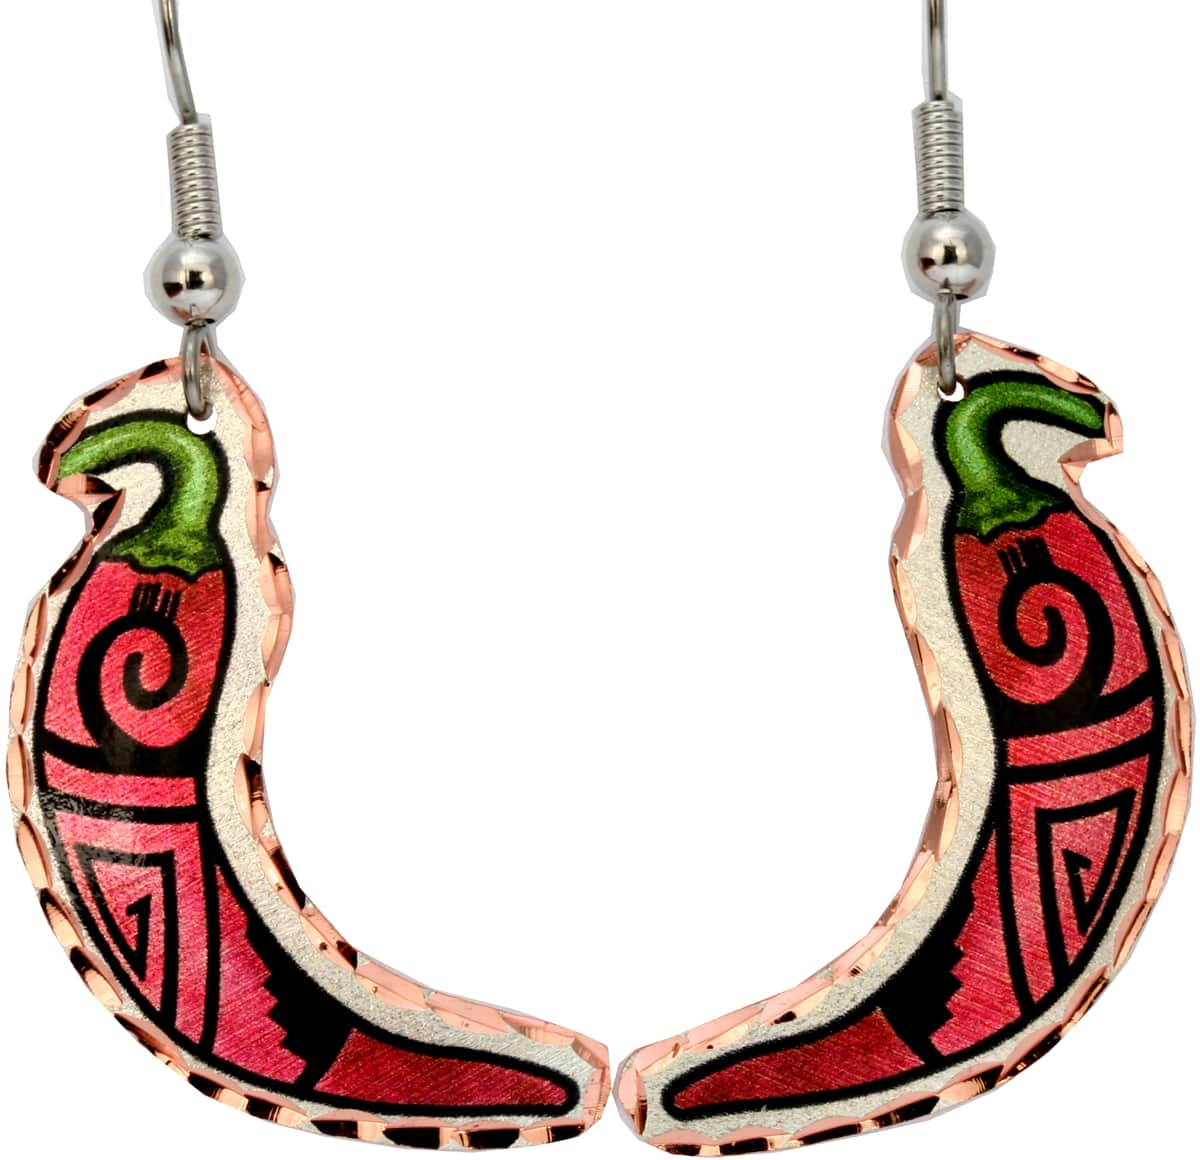 Red chili pepper earrings for women who love Southwestern fashion